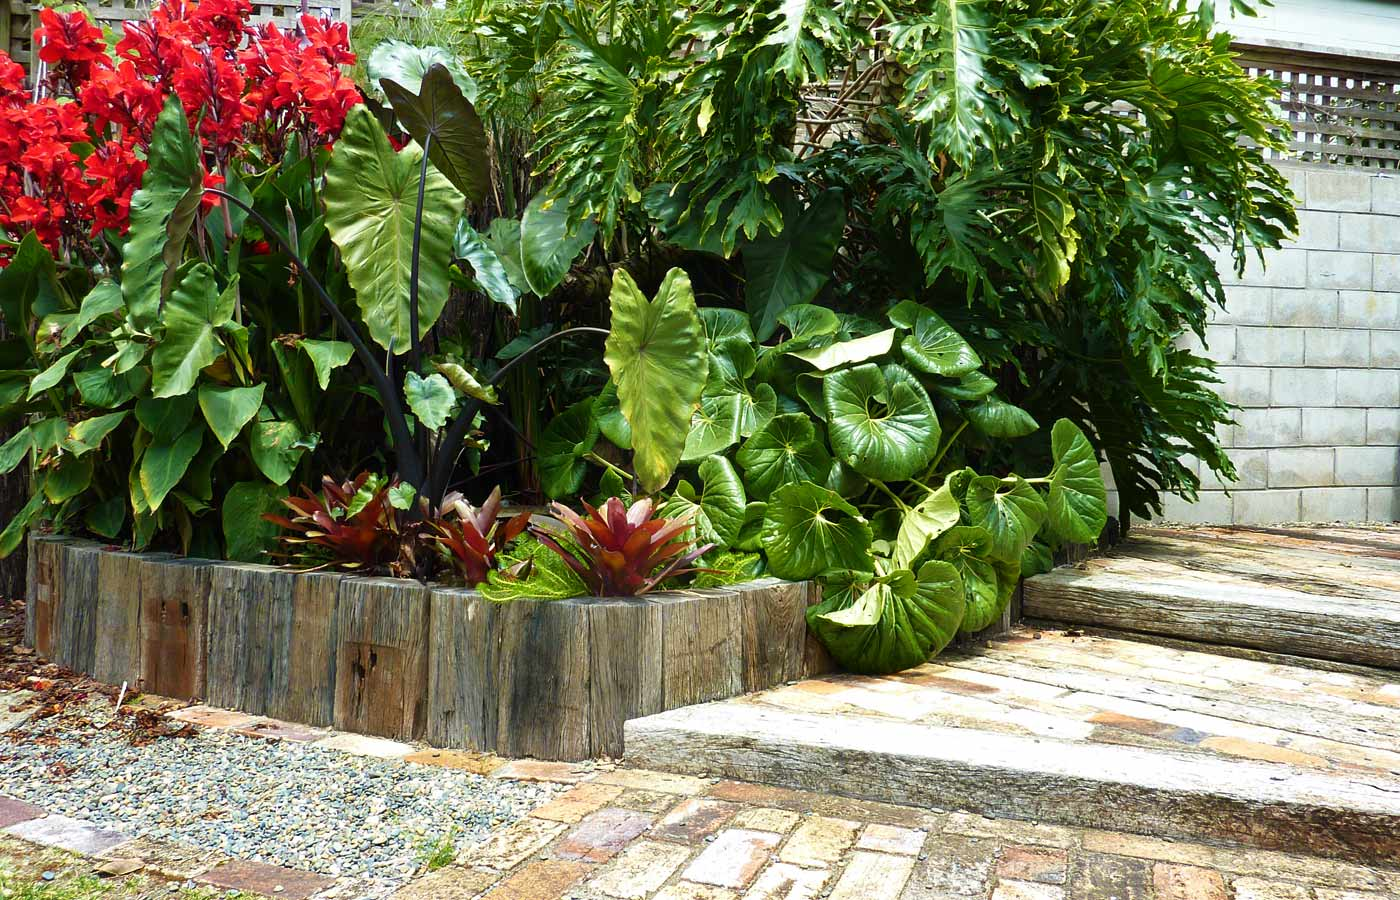 Canna, colocasia, bromeliads and palms